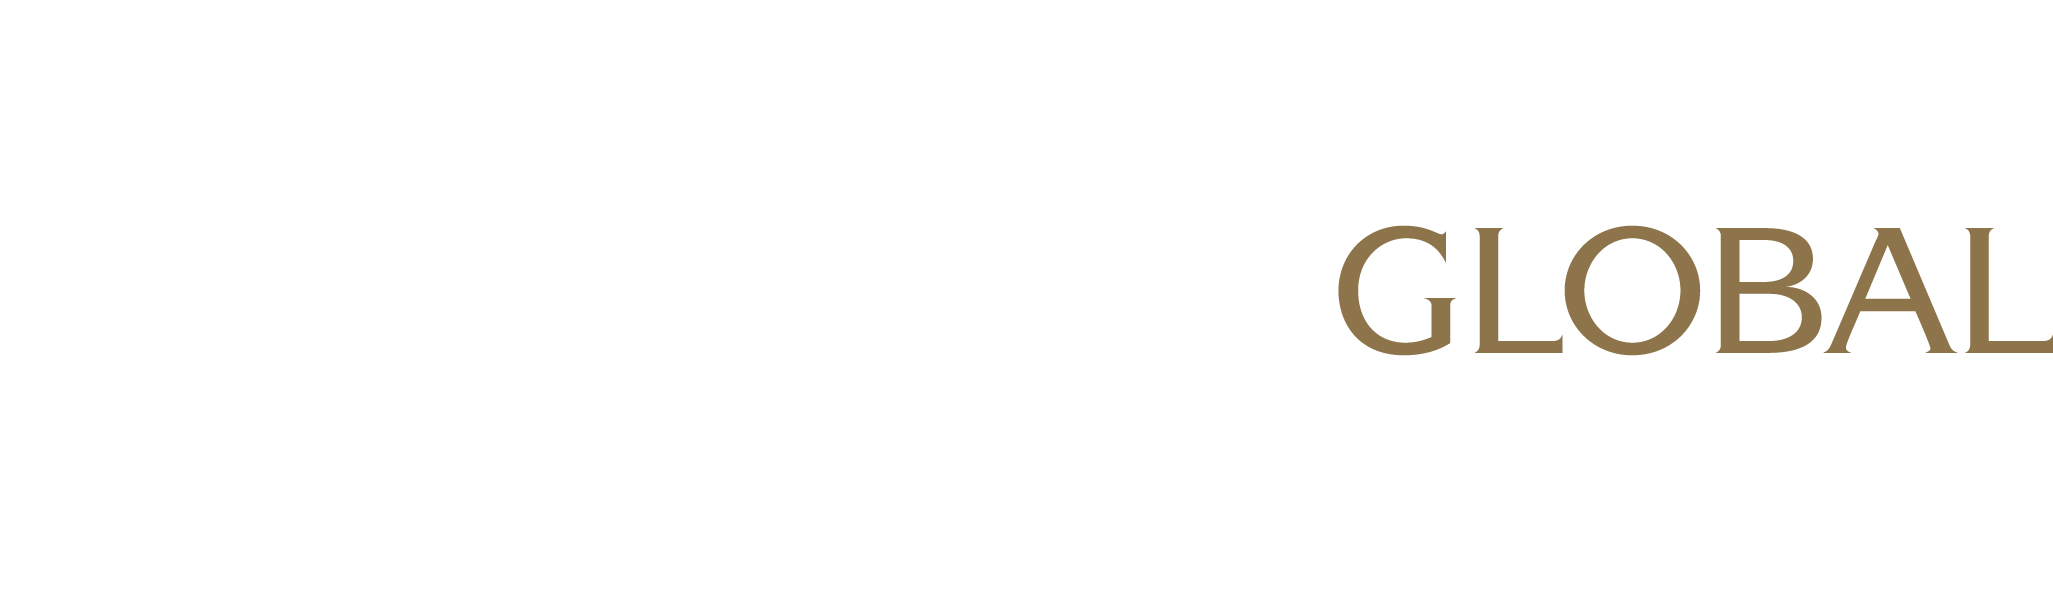 Naples Global Advisors